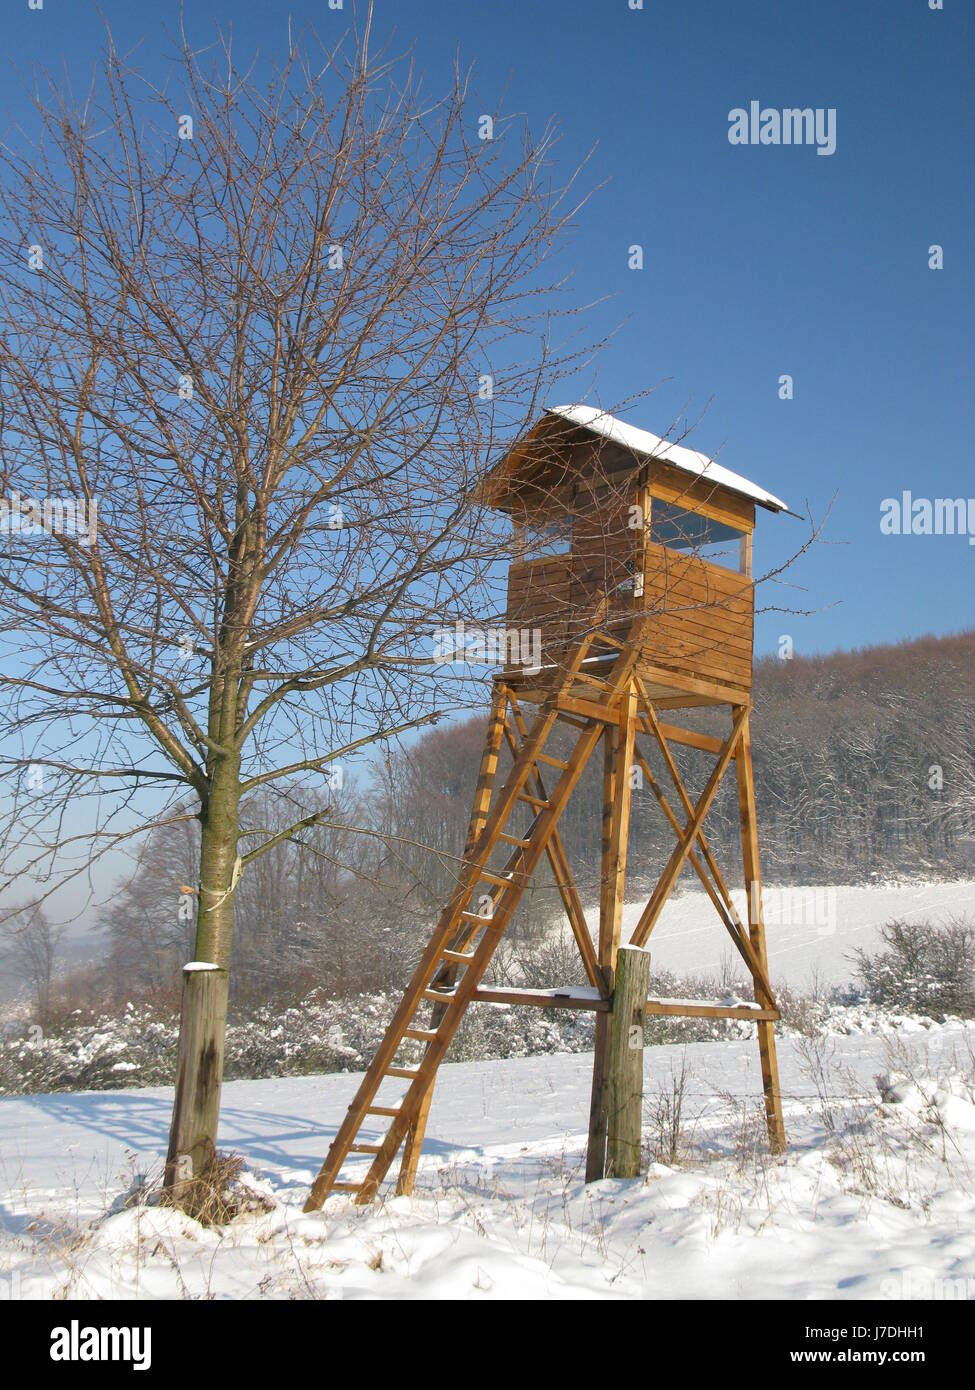 wait waiting station environment enviroment tree mountains winter wood wild - Stock Image